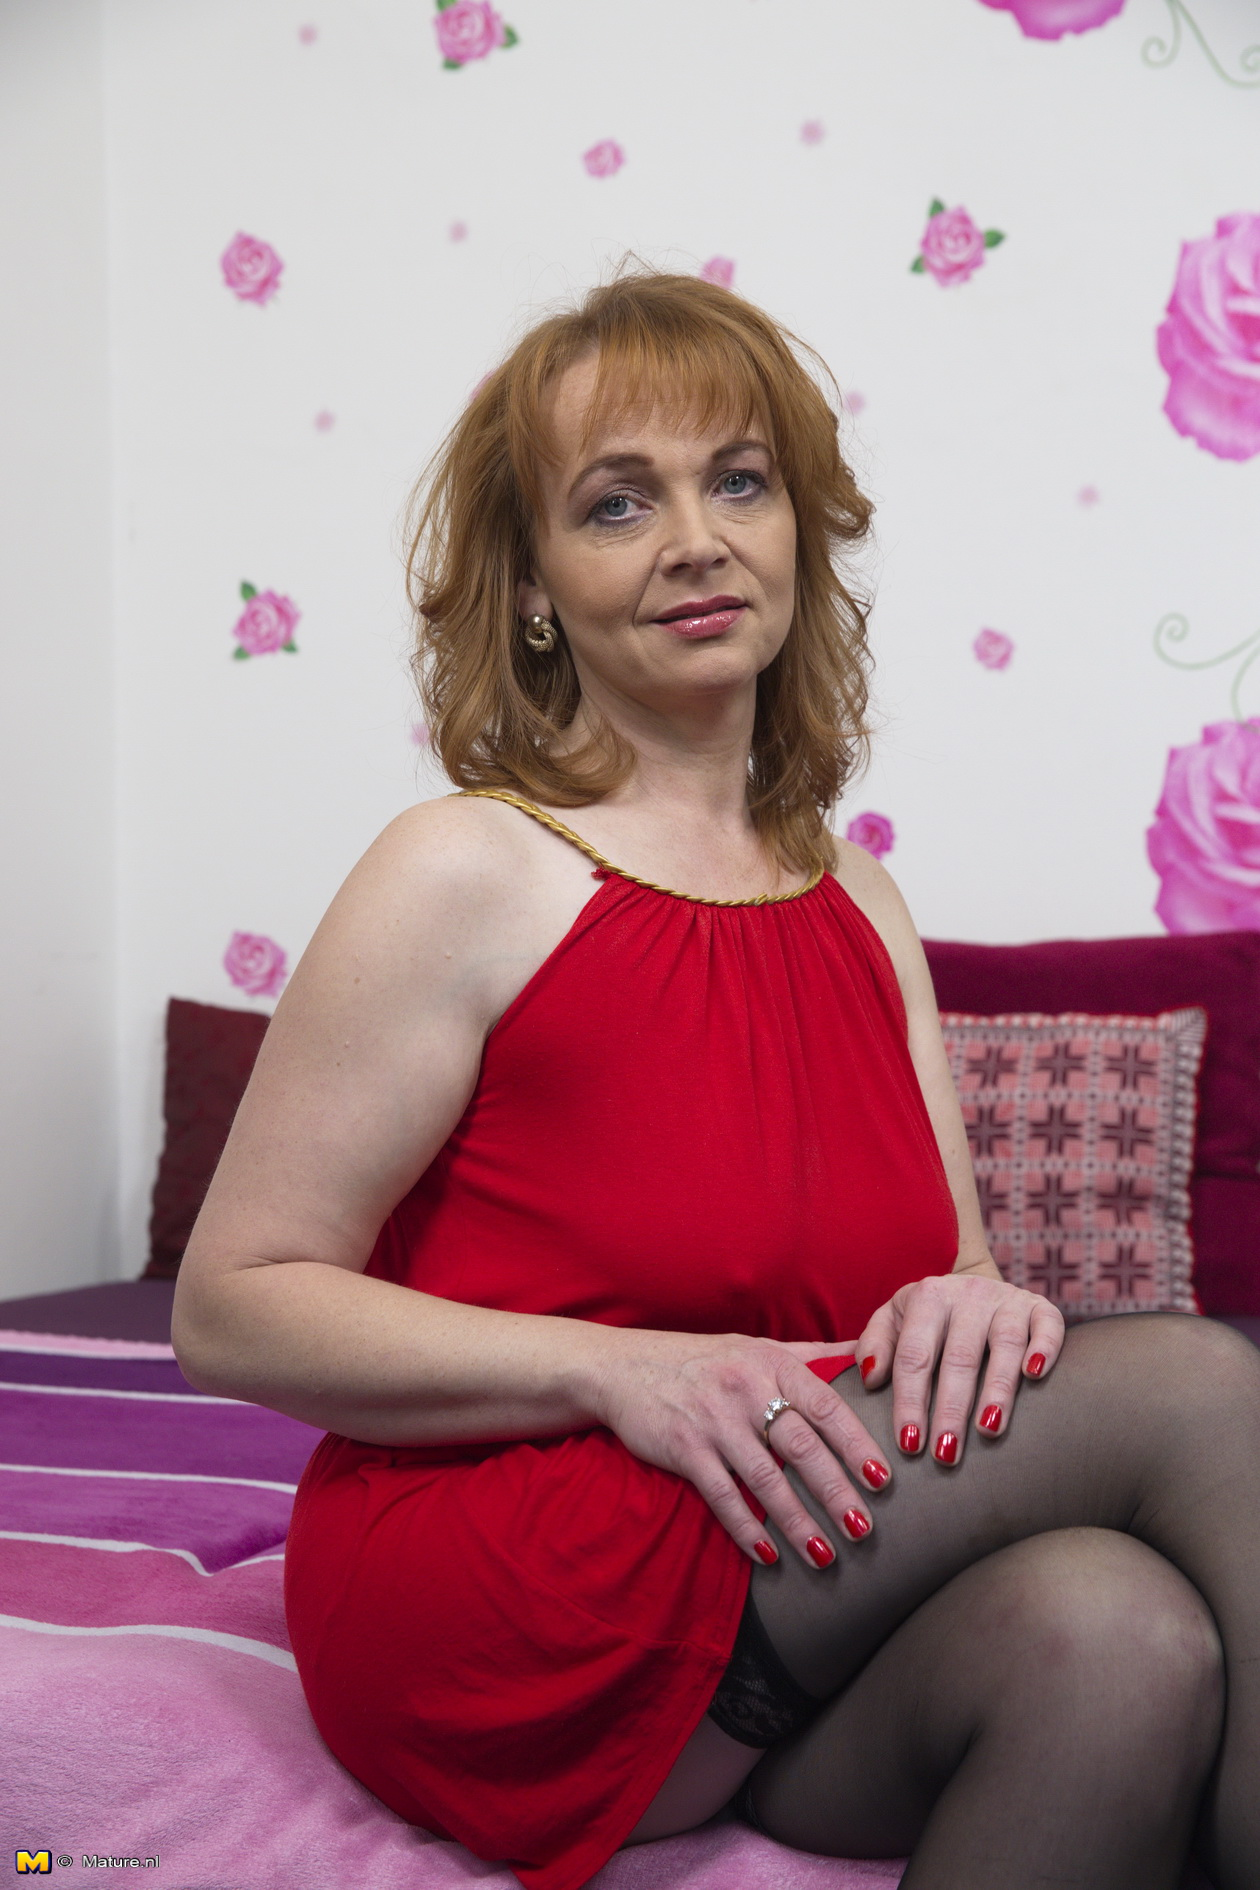 Horny British housewife getting ready to become dirty Free